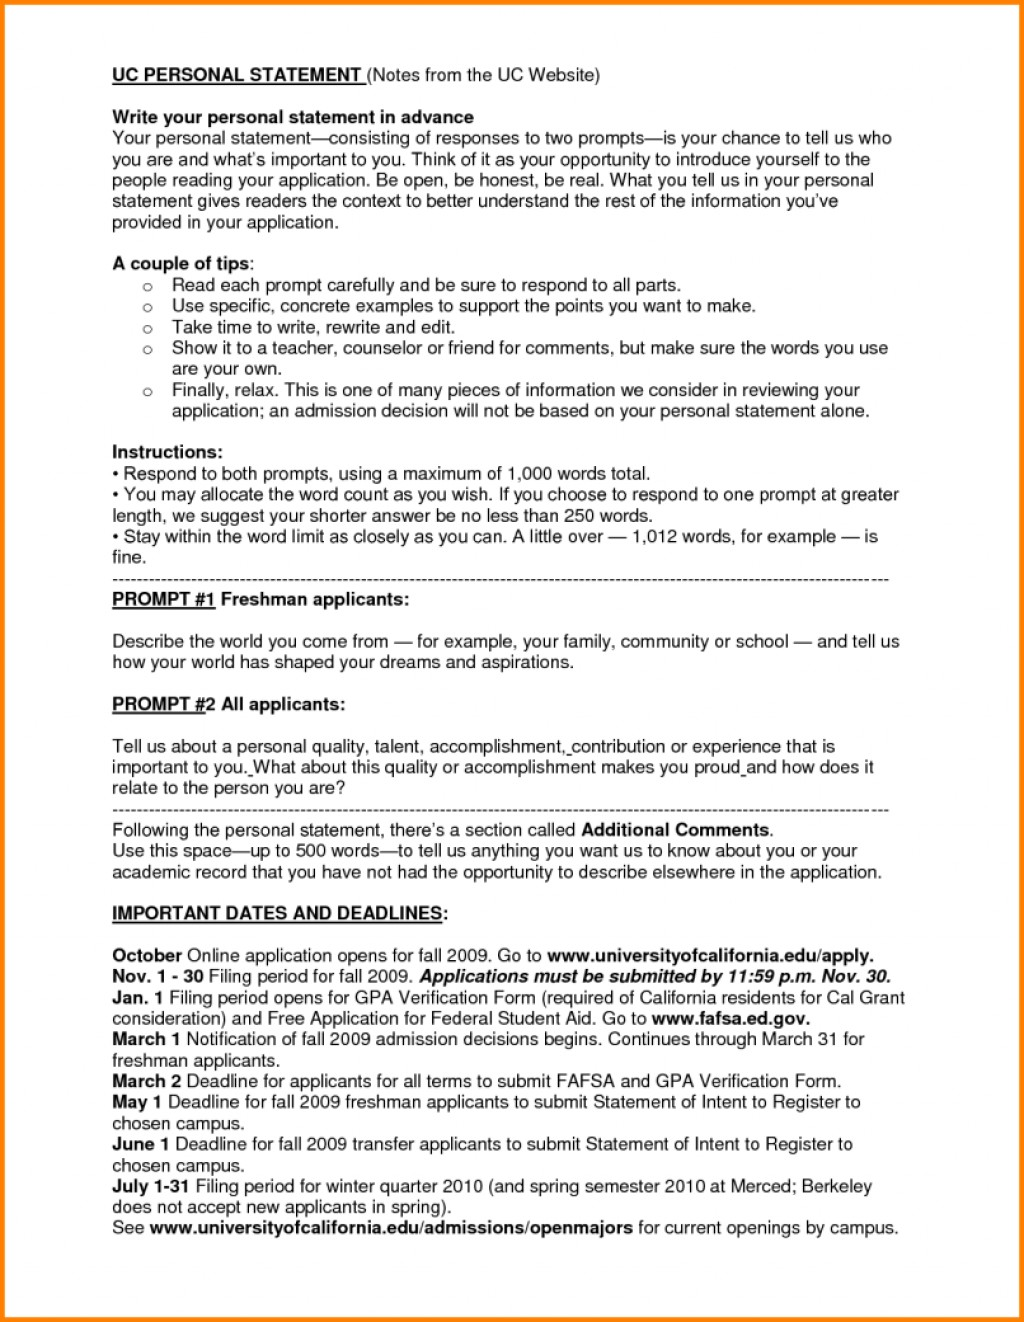 006 Bunch Ideas Of Application Essay Example Marvelous College Prompts Texas Texasresize8062c1041ssl1 Stirring Csu 2017 2018 Questions Large